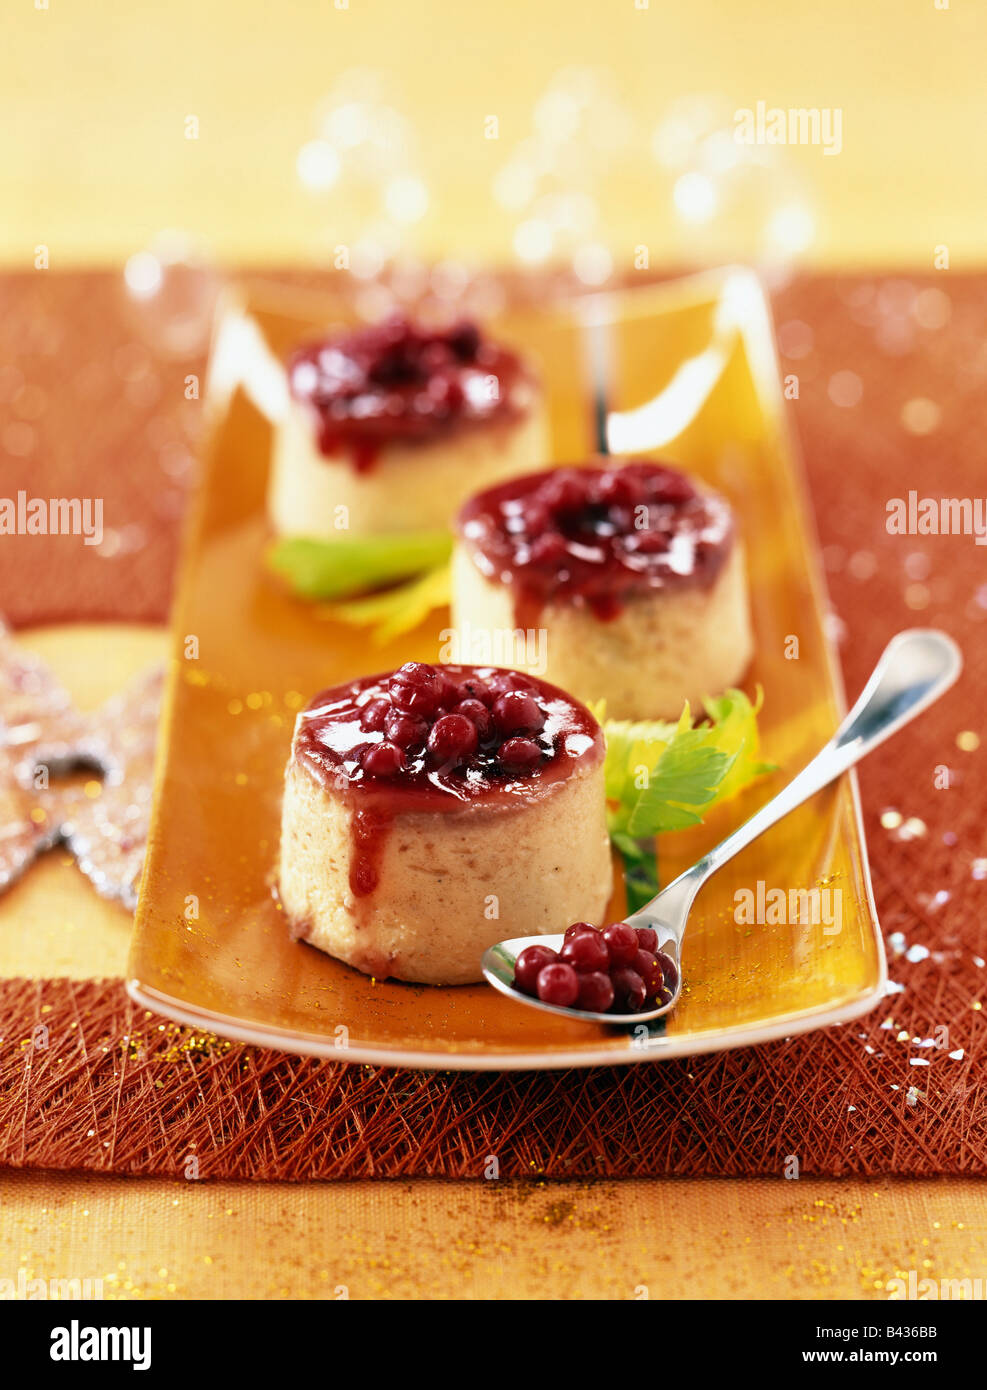 Pureed celery with cranberries - Stock Image